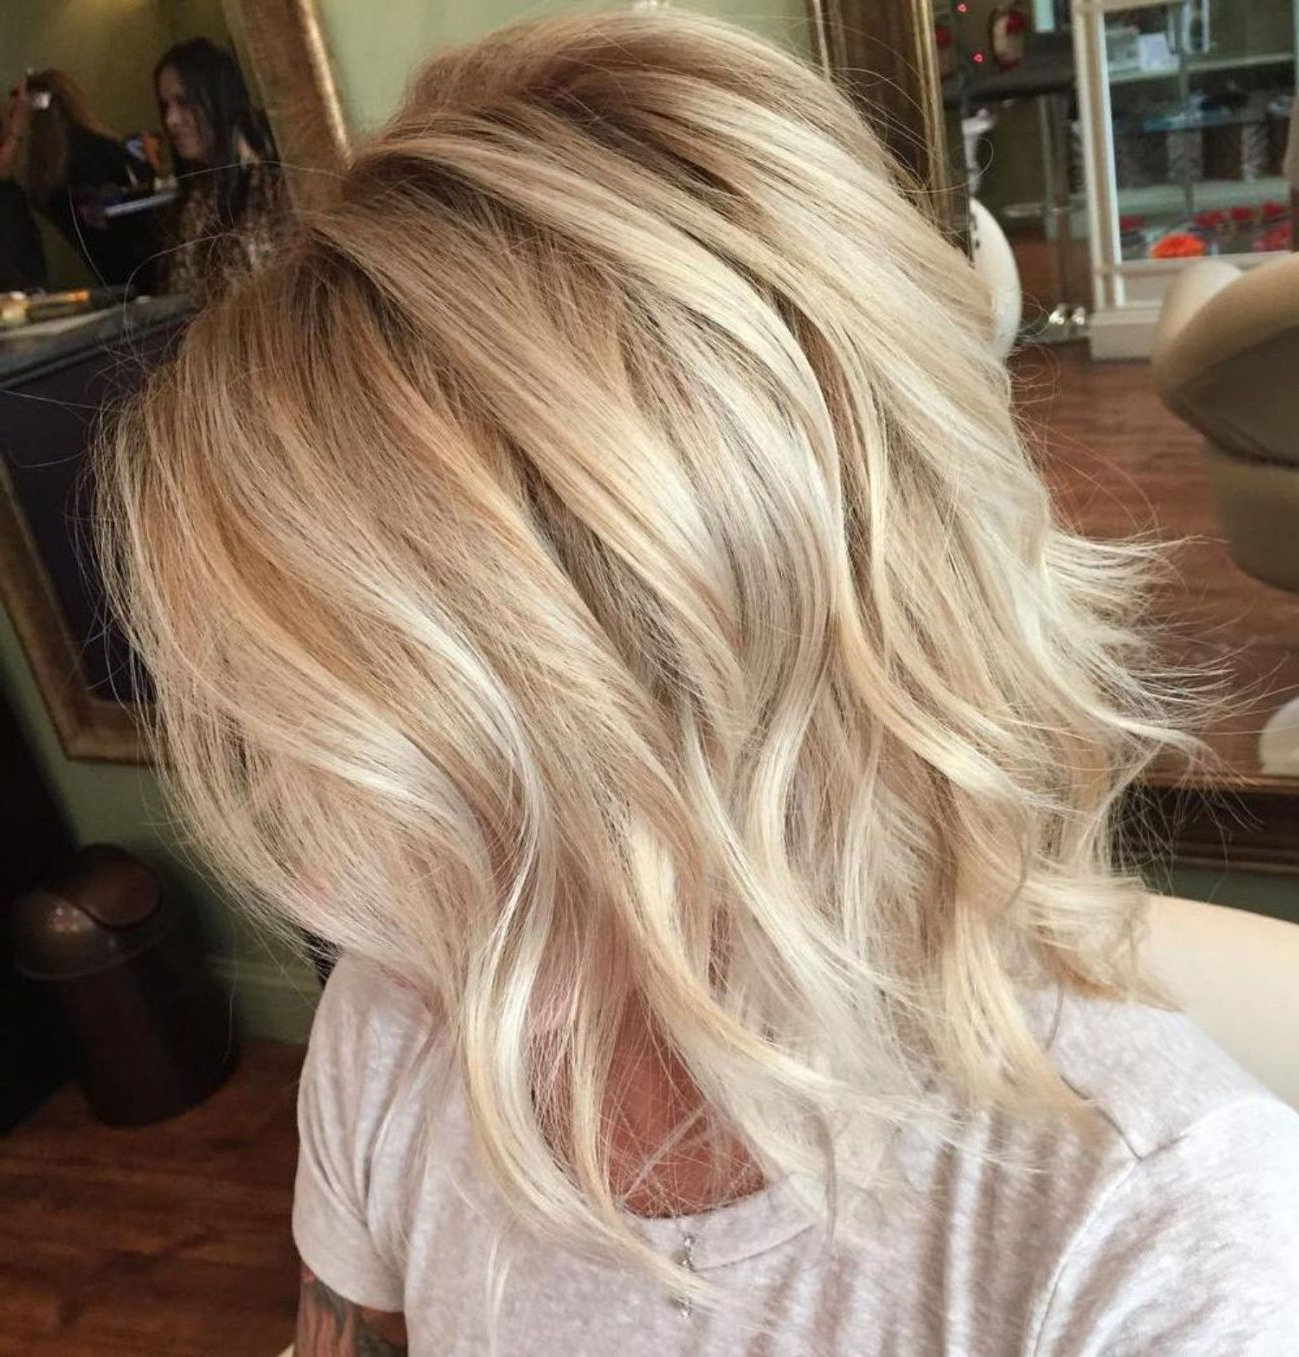 Popular Choppy Bright Blonde Bob Hairstyles Inside 70 Devastatingly Cool Haircuts For Thin Hair In (View 18 of 20)